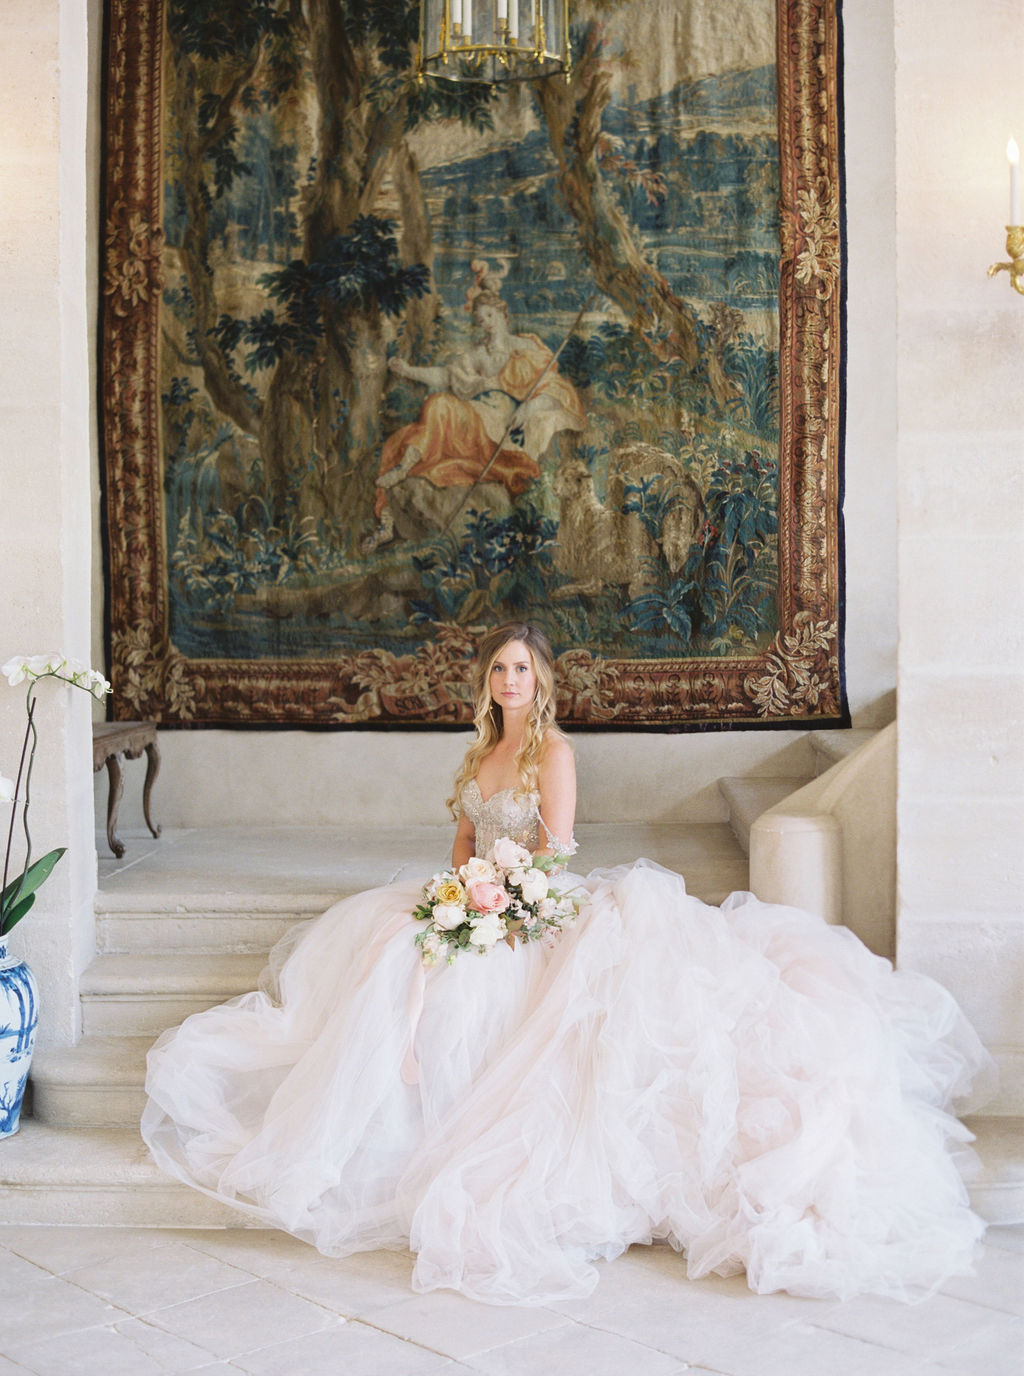 travellur_photoshoot__elegance_Jardin_de_Chateau_de_Villette_bride_flowers_interiors.jpg